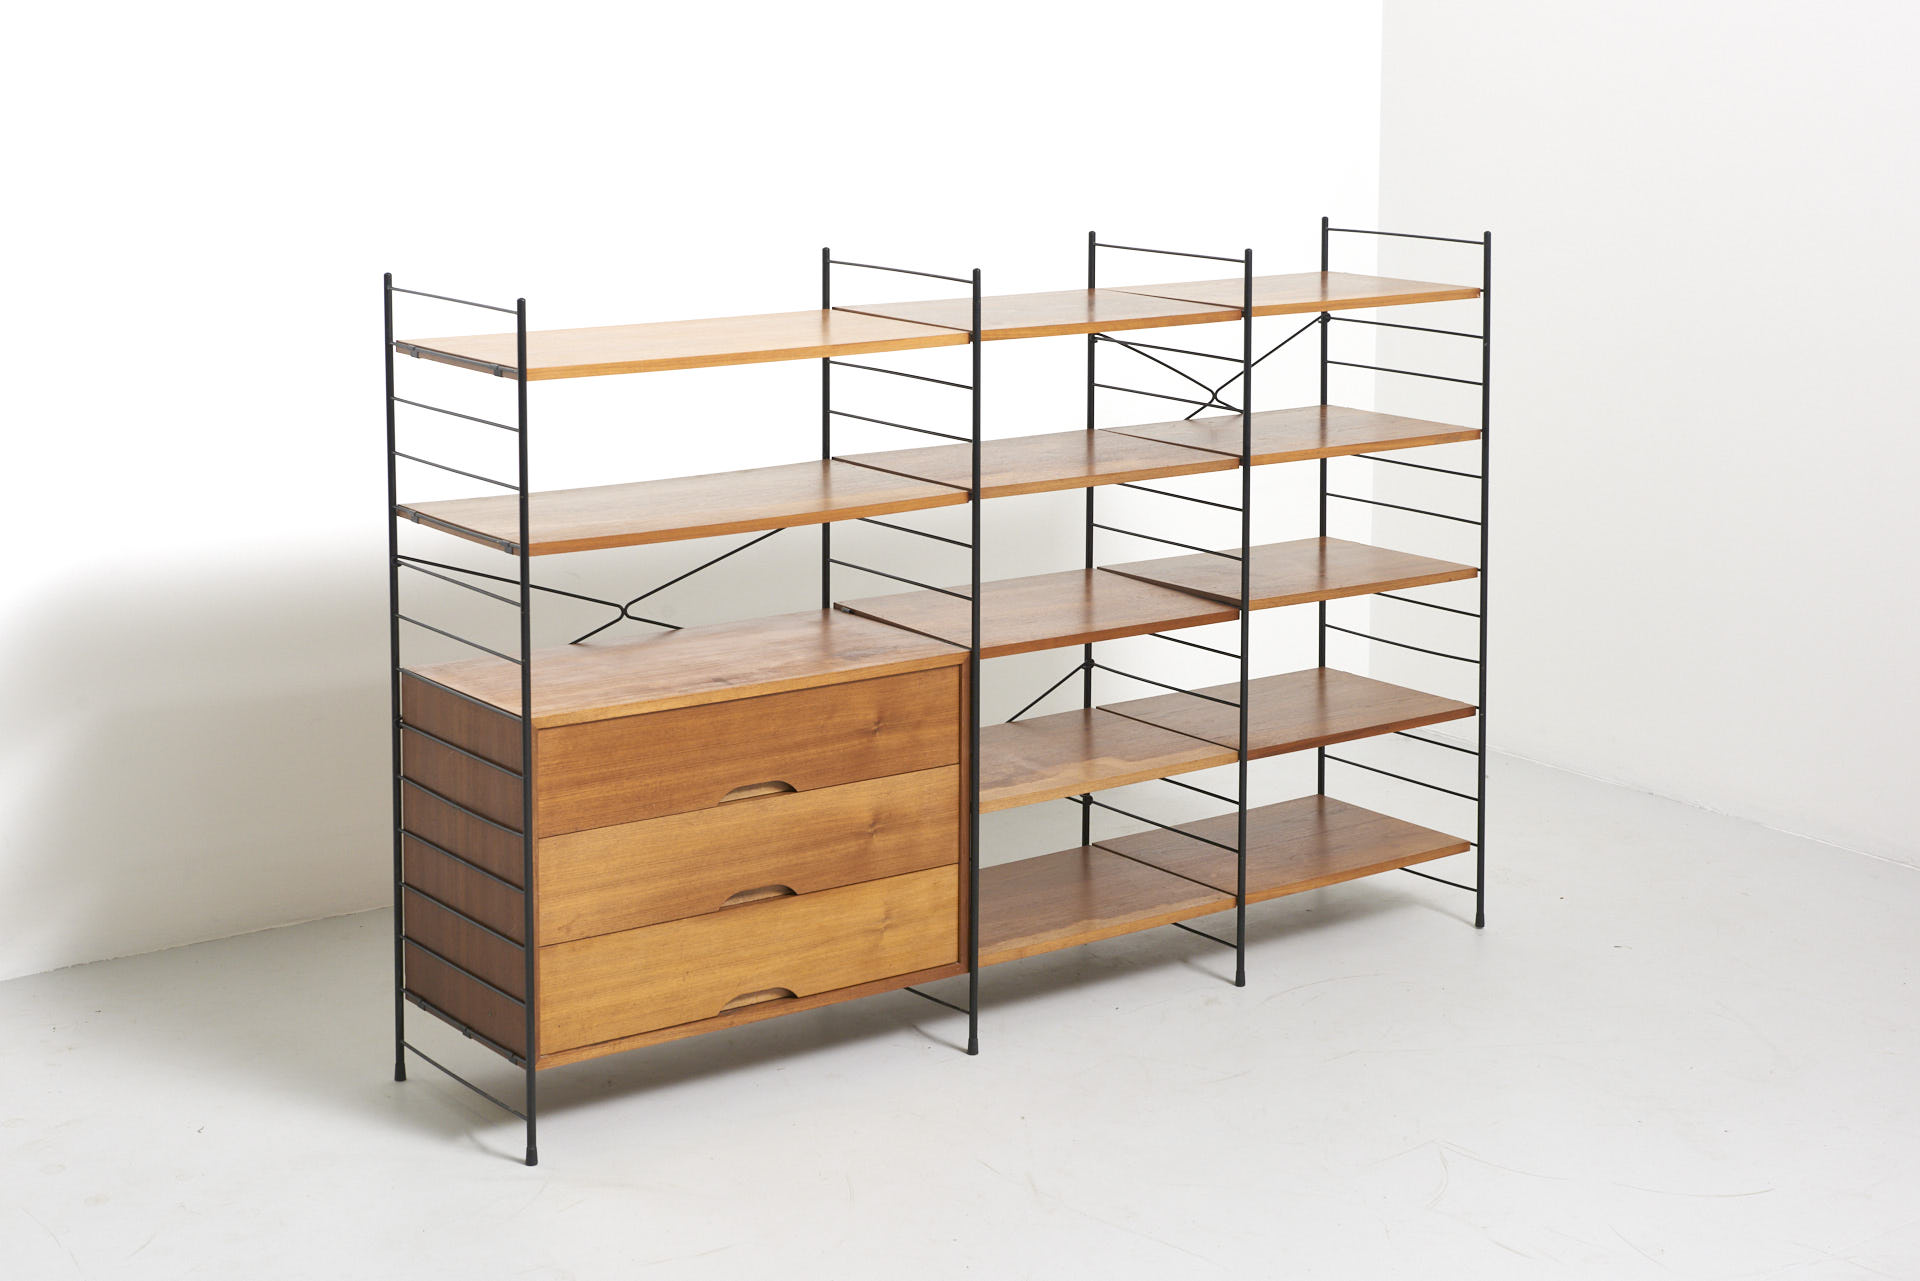 modestfurniture-vintage-2590-whb-shelving-unit-set-601